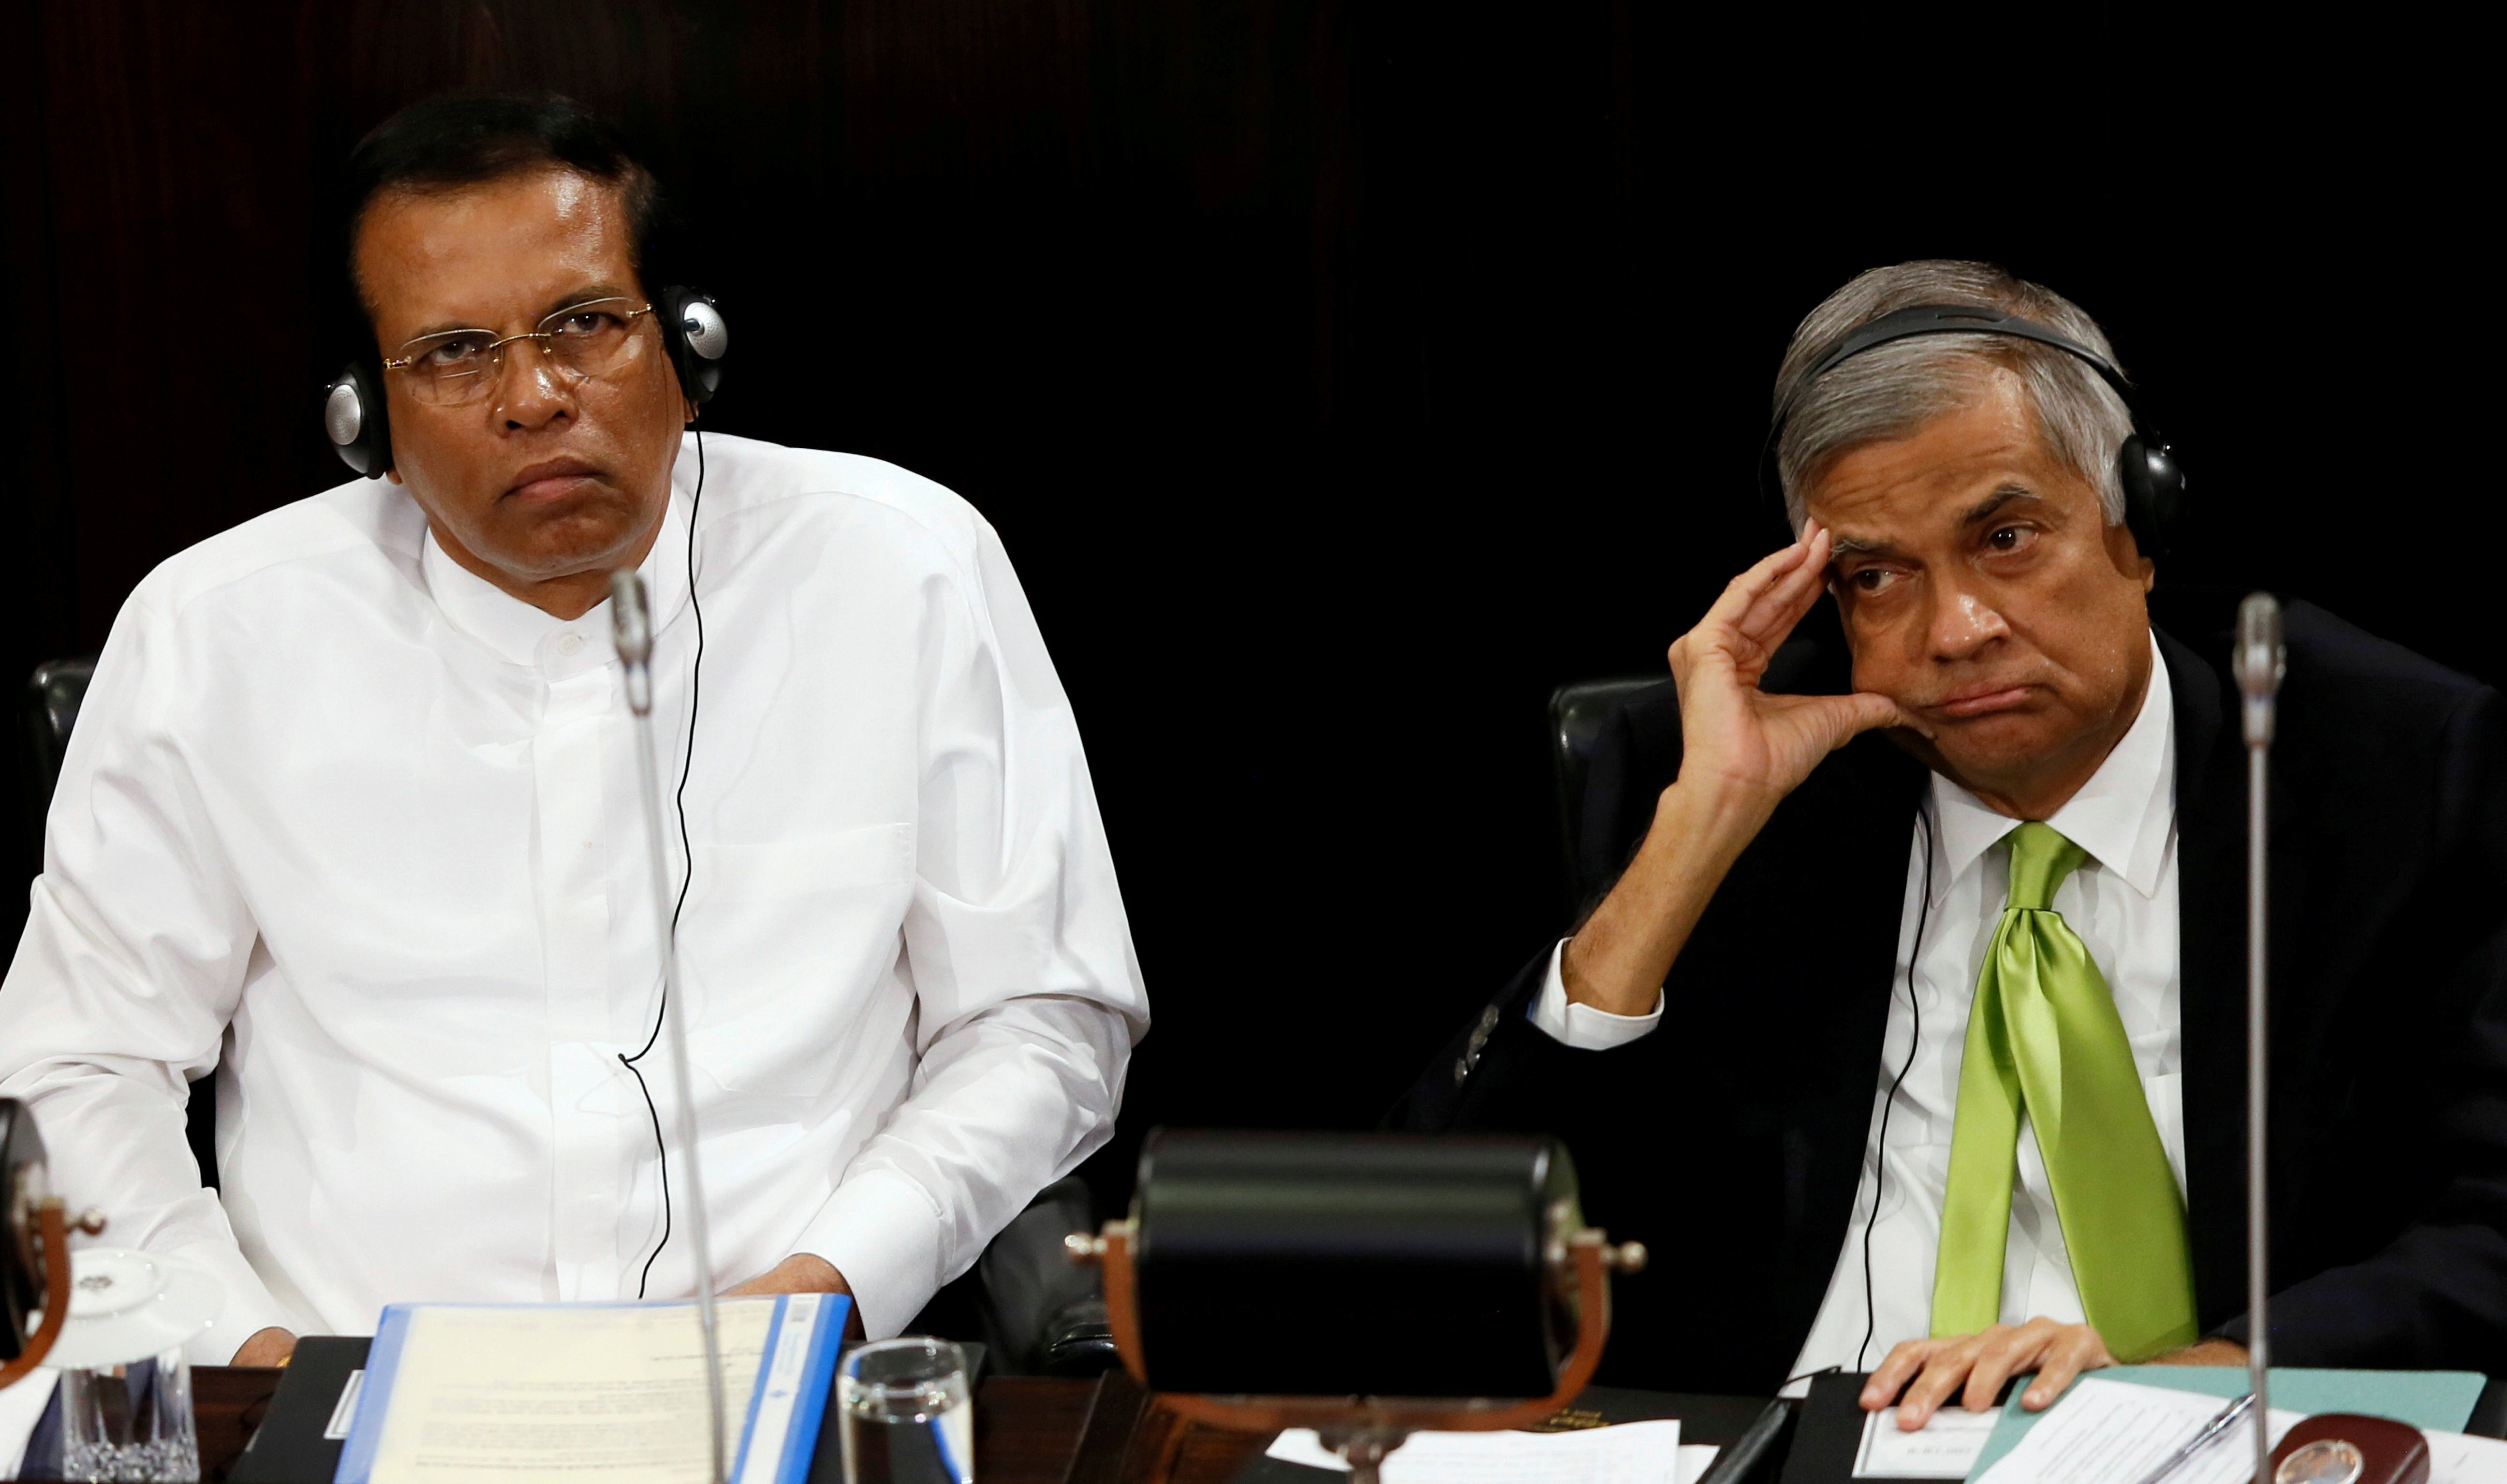 Sri Lanka's President Maithripala Sirisena and Prime Minister Ranil Wickremesinghe look on during a Parliament session marking the 70th anniversary of Sri LankaÕs Government, in Colombo, Sri Lanka October 3, 2017. REUTERS/Dinuka Liyanawatte/File Photo